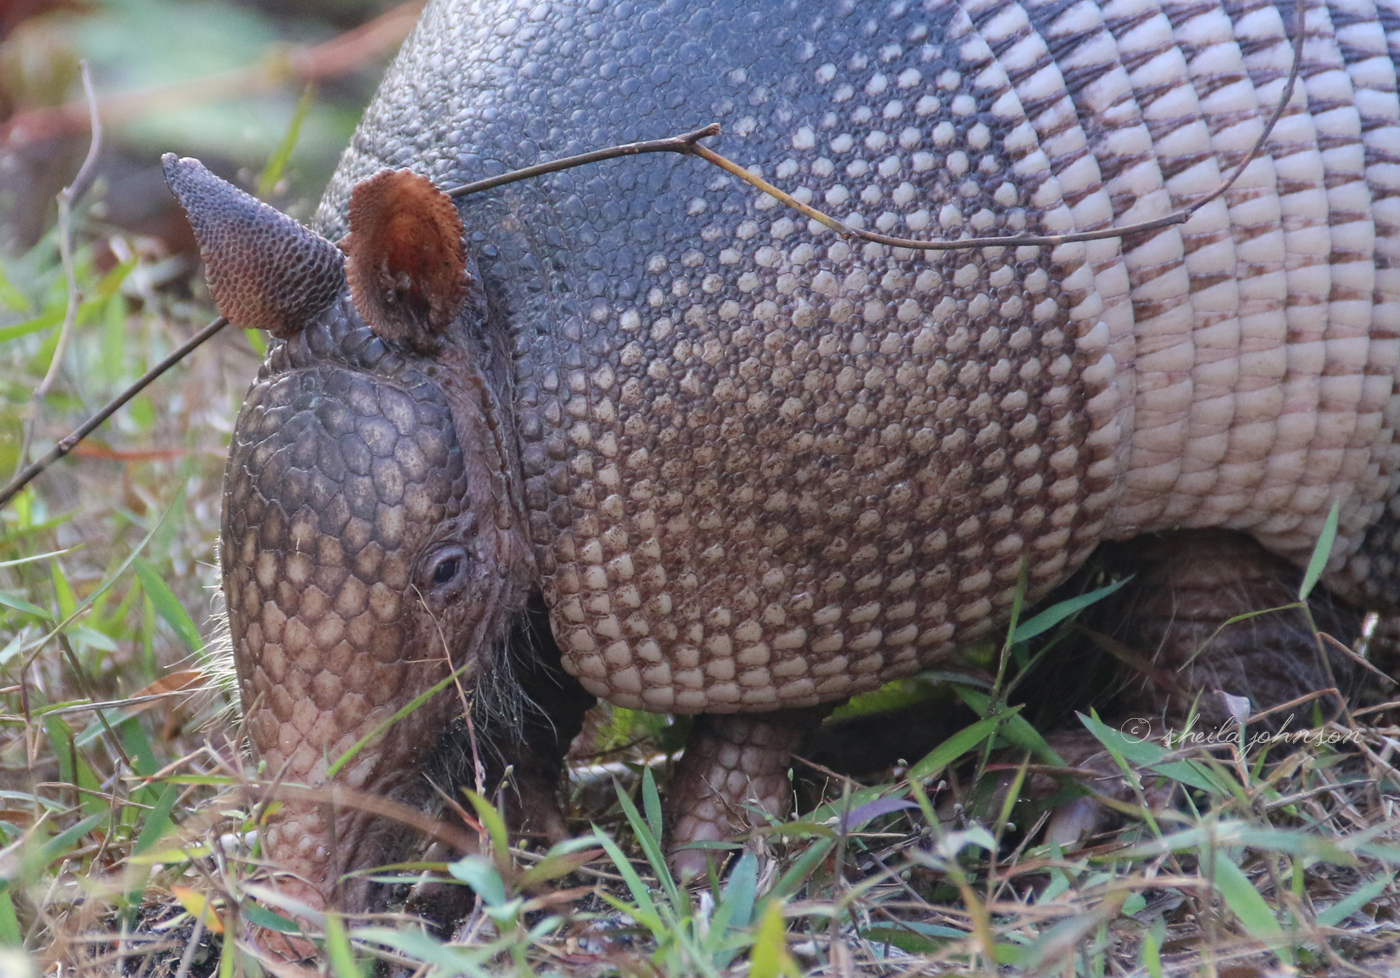 The Nine-Banded Armadillo Depends On Its Sense Of Smell To Get Around, Sense Danger, And Forage For Food, As It Has Horrible Eyesight. Its Eyesight Is So Bad, In Fact, That If You Are Very, Very Quiet (And Don't Smell Much), You Can Get As Close As A Few Feet Away, And They'll Never Know!